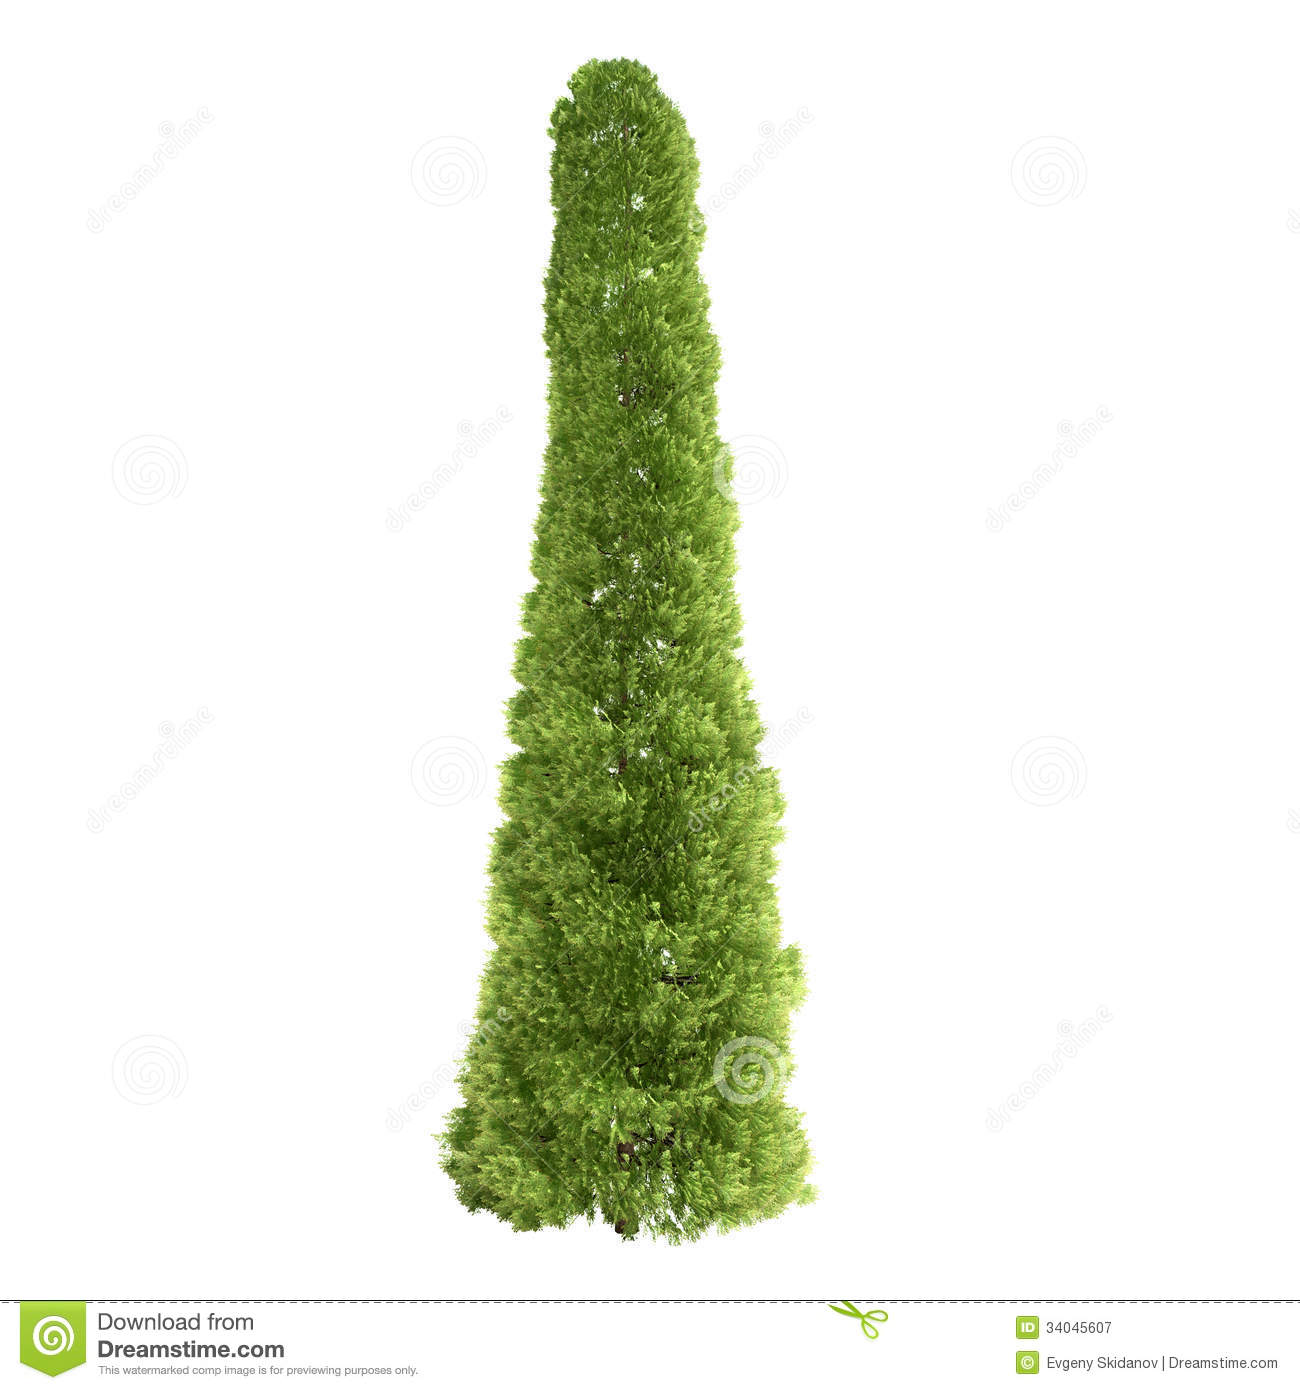 Tall Thuja Tree Isolated Royalty Free Stock Photography.